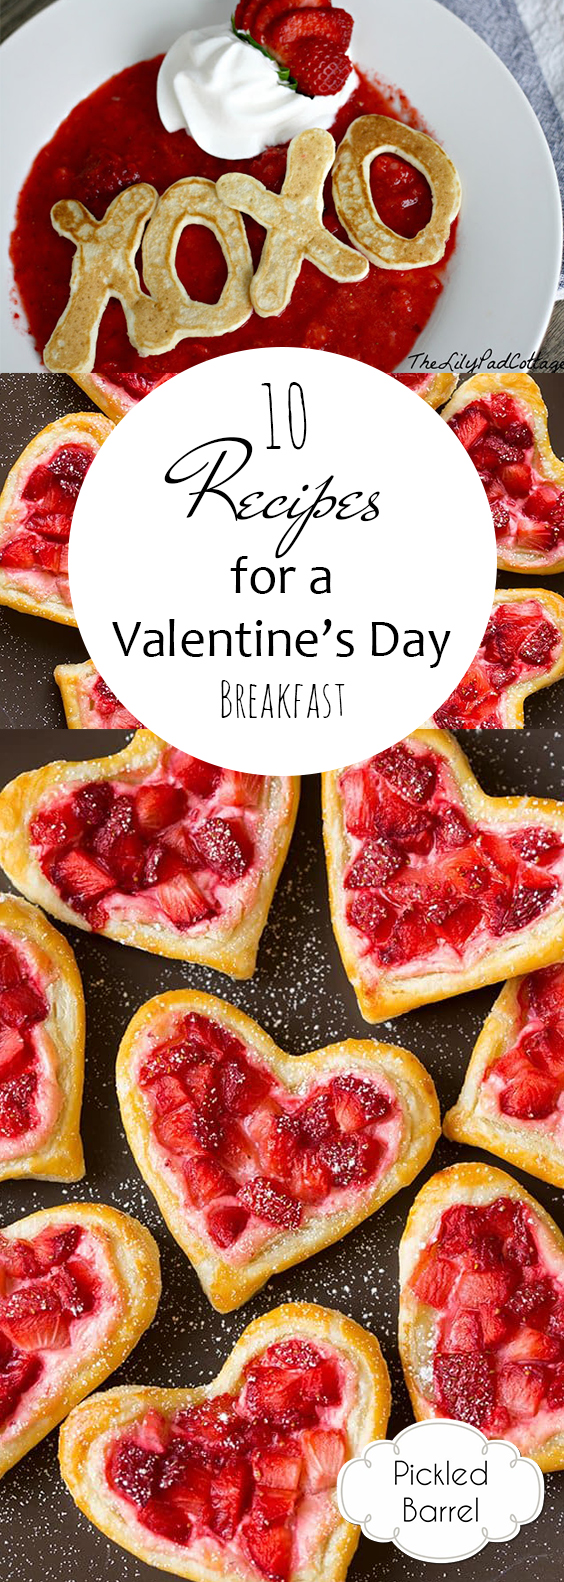 10 Recipes for a Valentines Day Breakfast| Breakfast, Breakfast Recipes, Valentines Day Recipes, DIY Valentines Day, Holiday Eats, Popular Pin #ValentinesDay #Breakfast